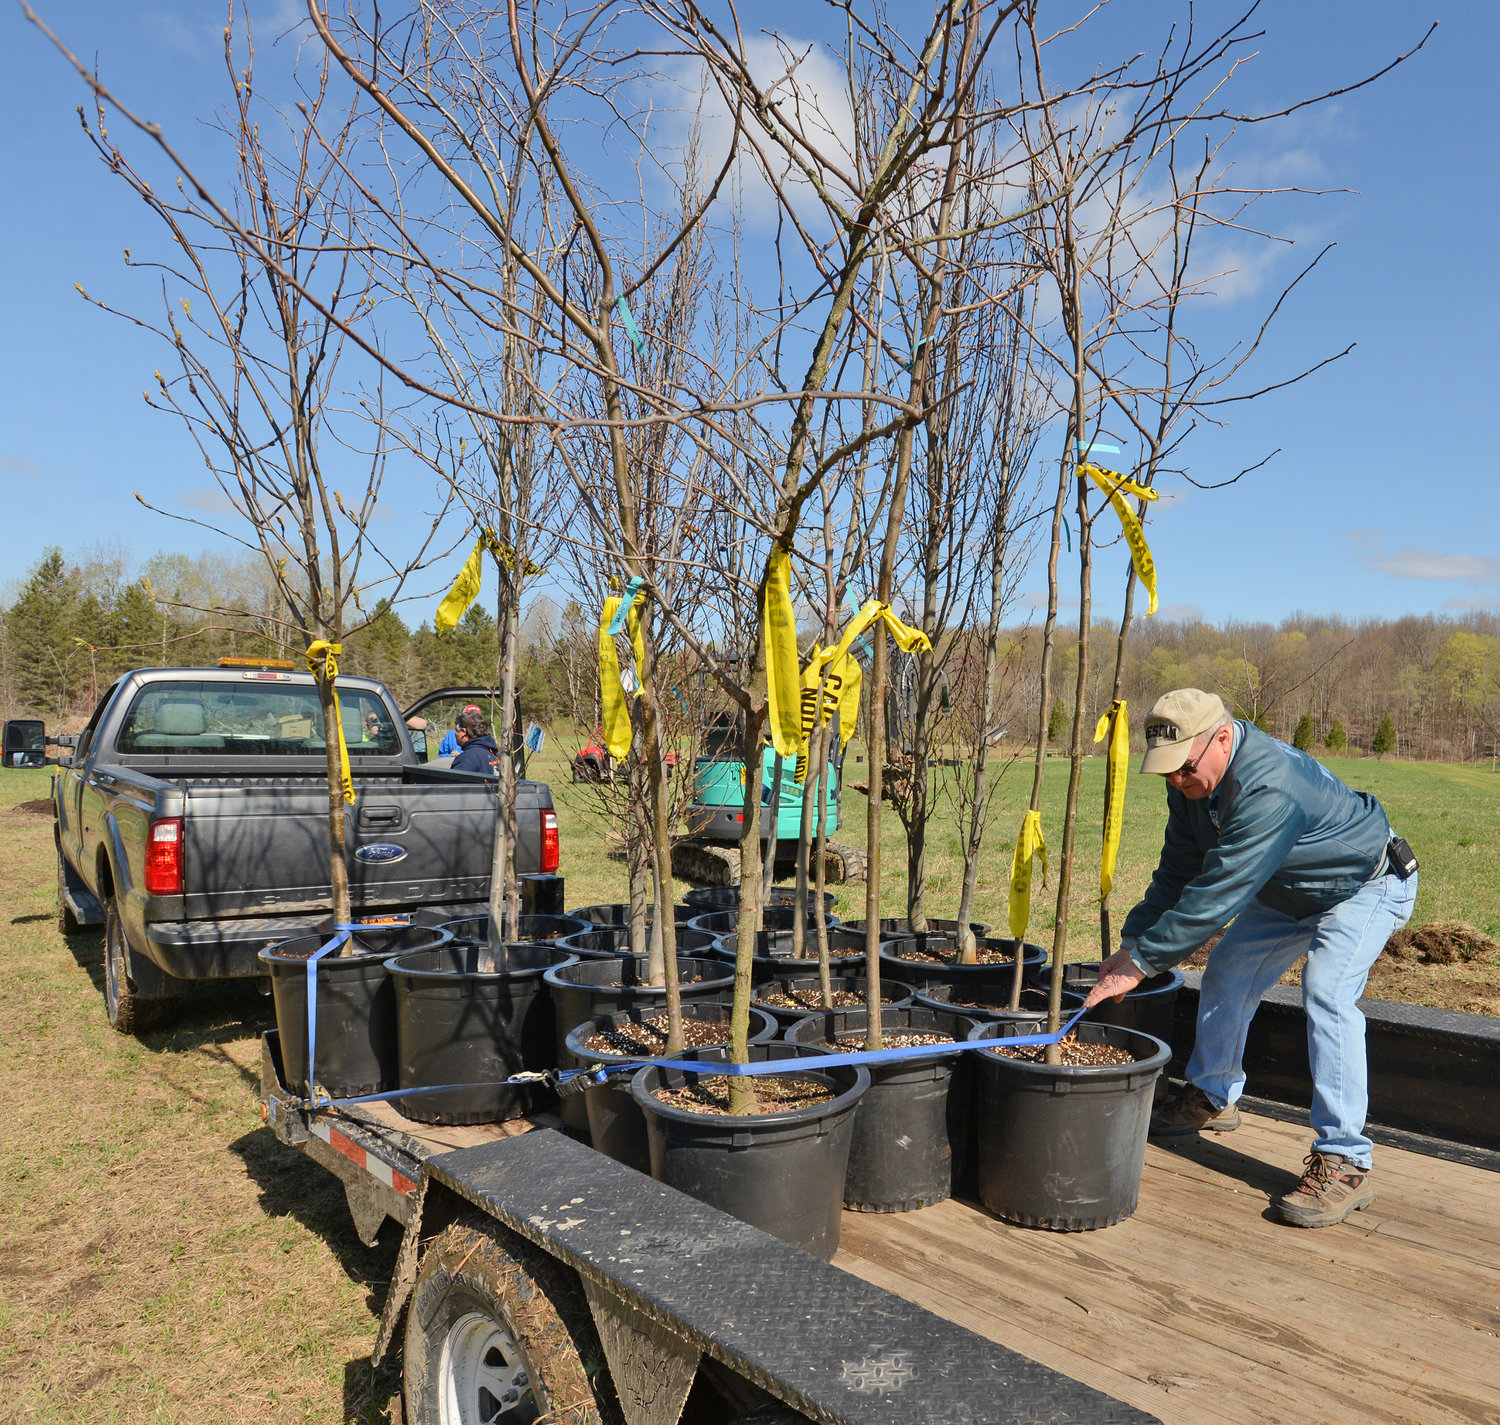 SPECIAL DELIVERY — Willard Streiff, supervisor for the Town of Floyd, loosens up a strap safeguarding a load of trees that will be planted along a trail the town is constructing.